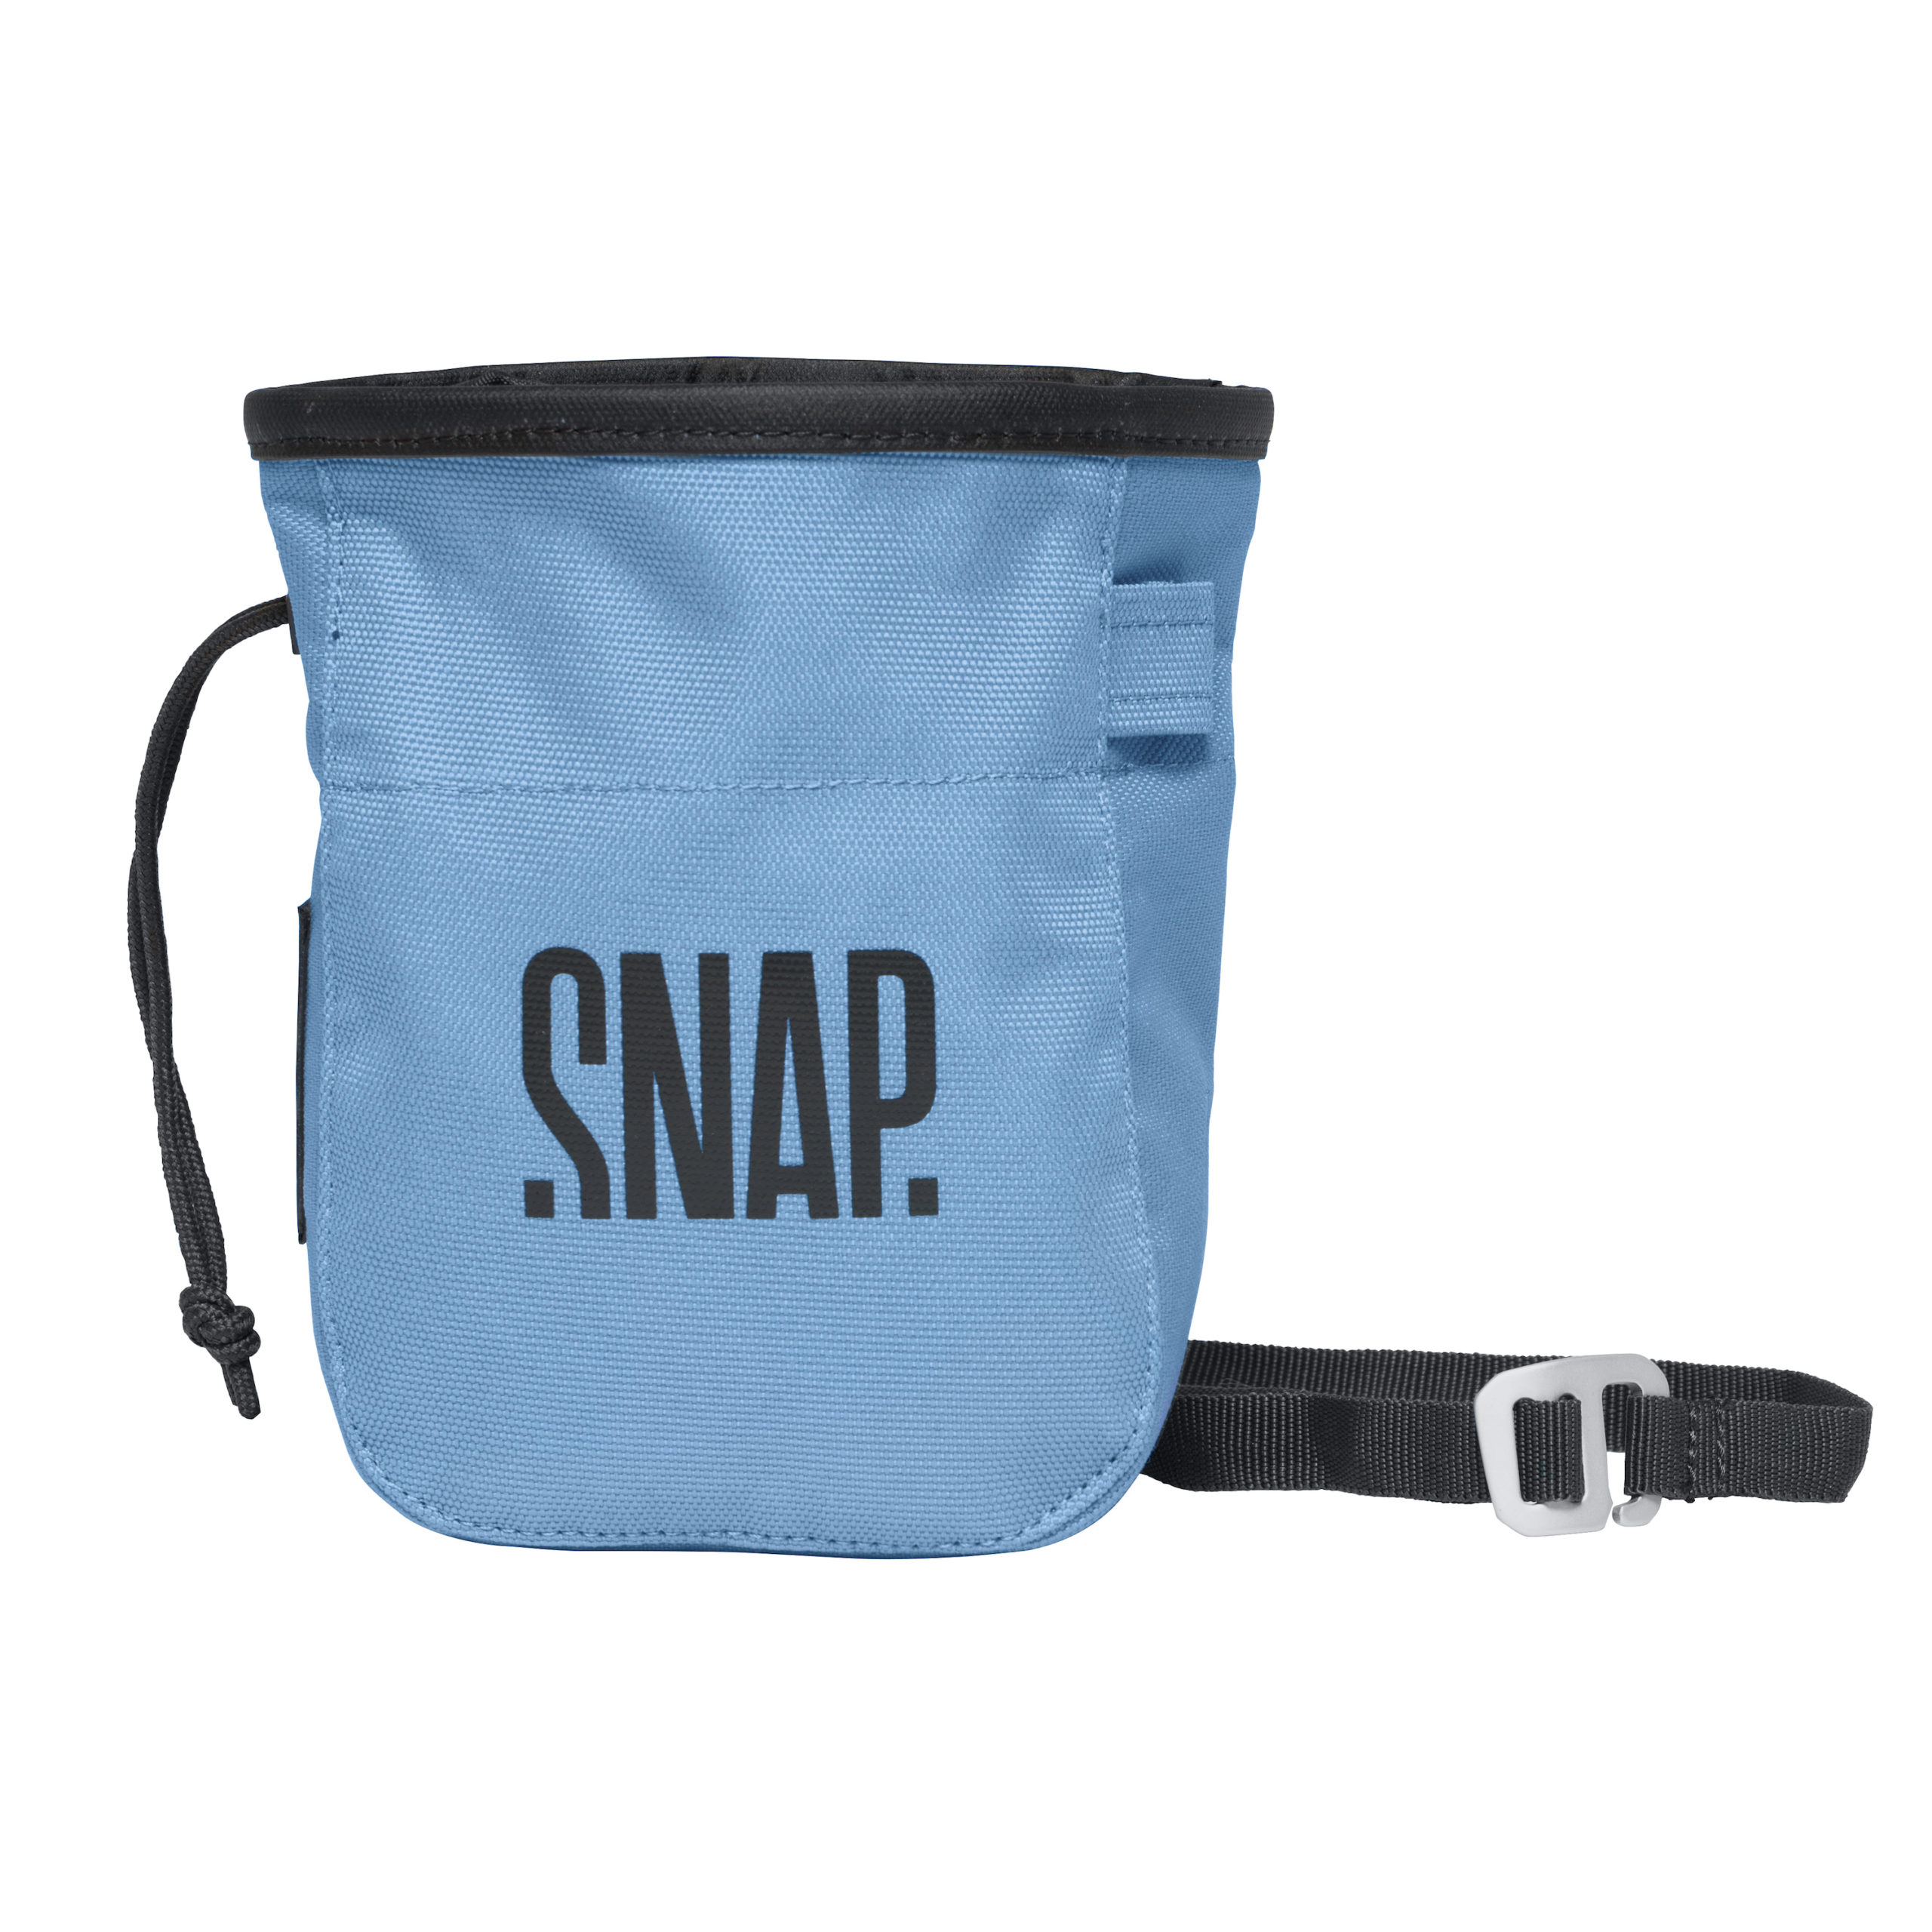 chalk bag for climbers or boulderers